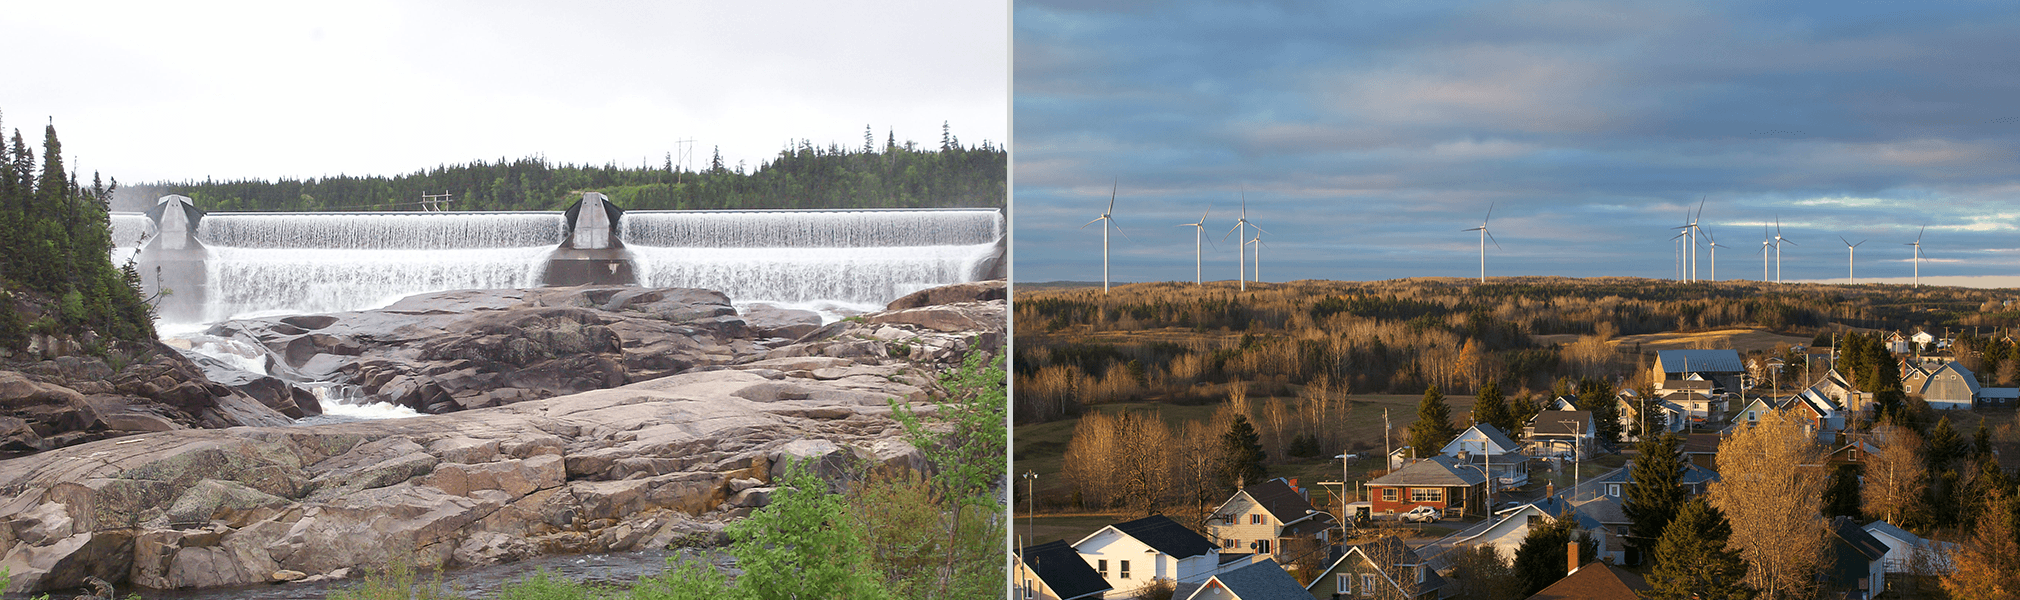 Magpie hydroelectric facility - Viger-Denonville wind farm